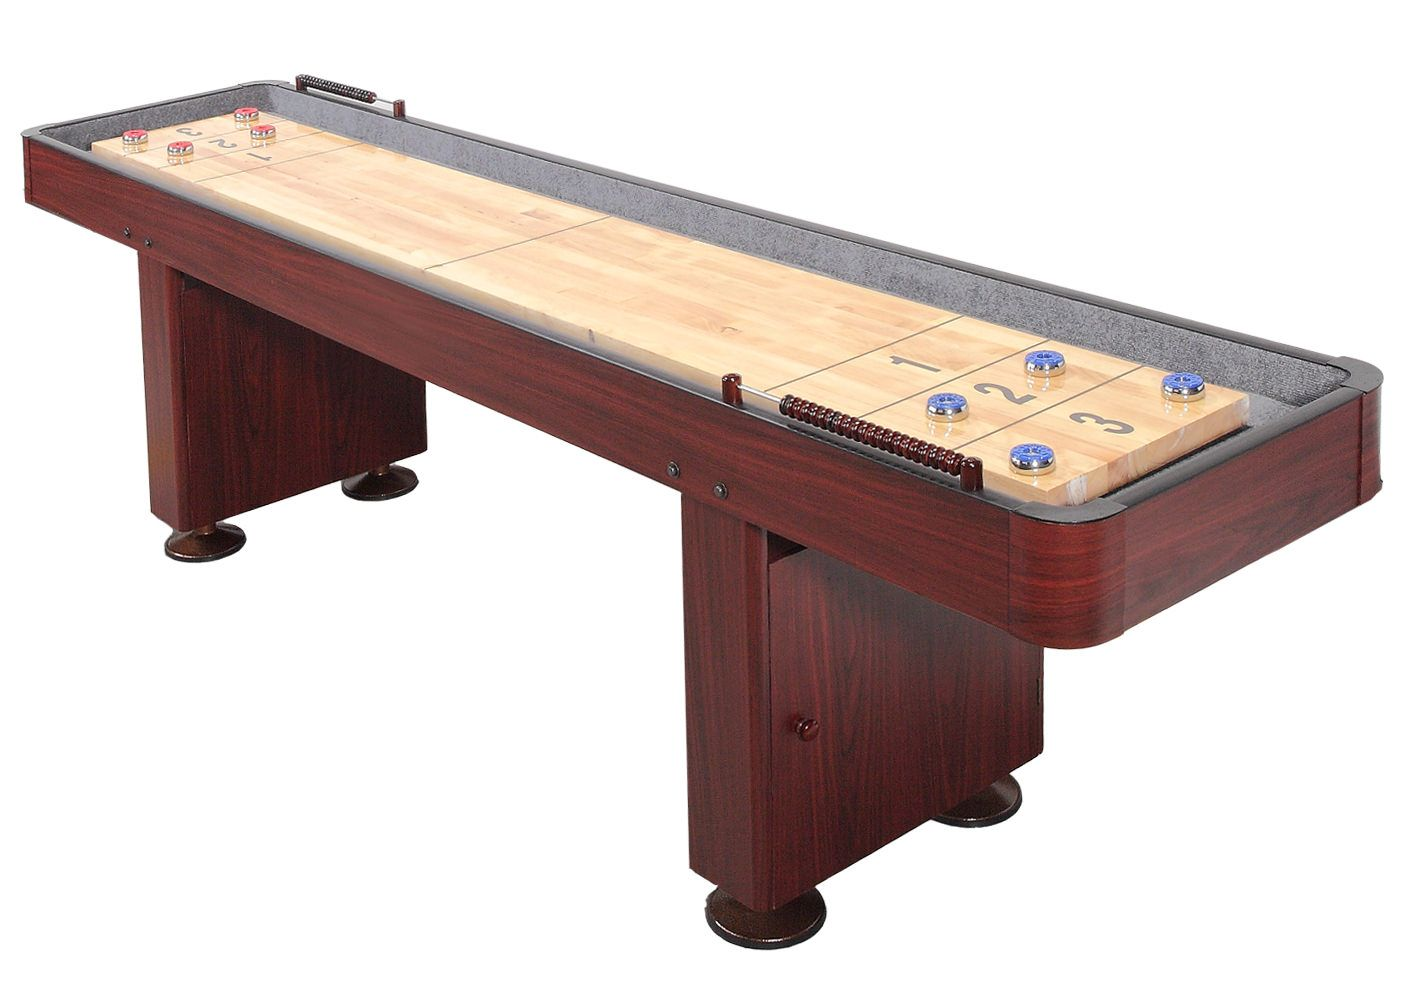 Carmelli NG1210 - 9 Foot Deluxe Shuffleboard Table - Dark Cherry